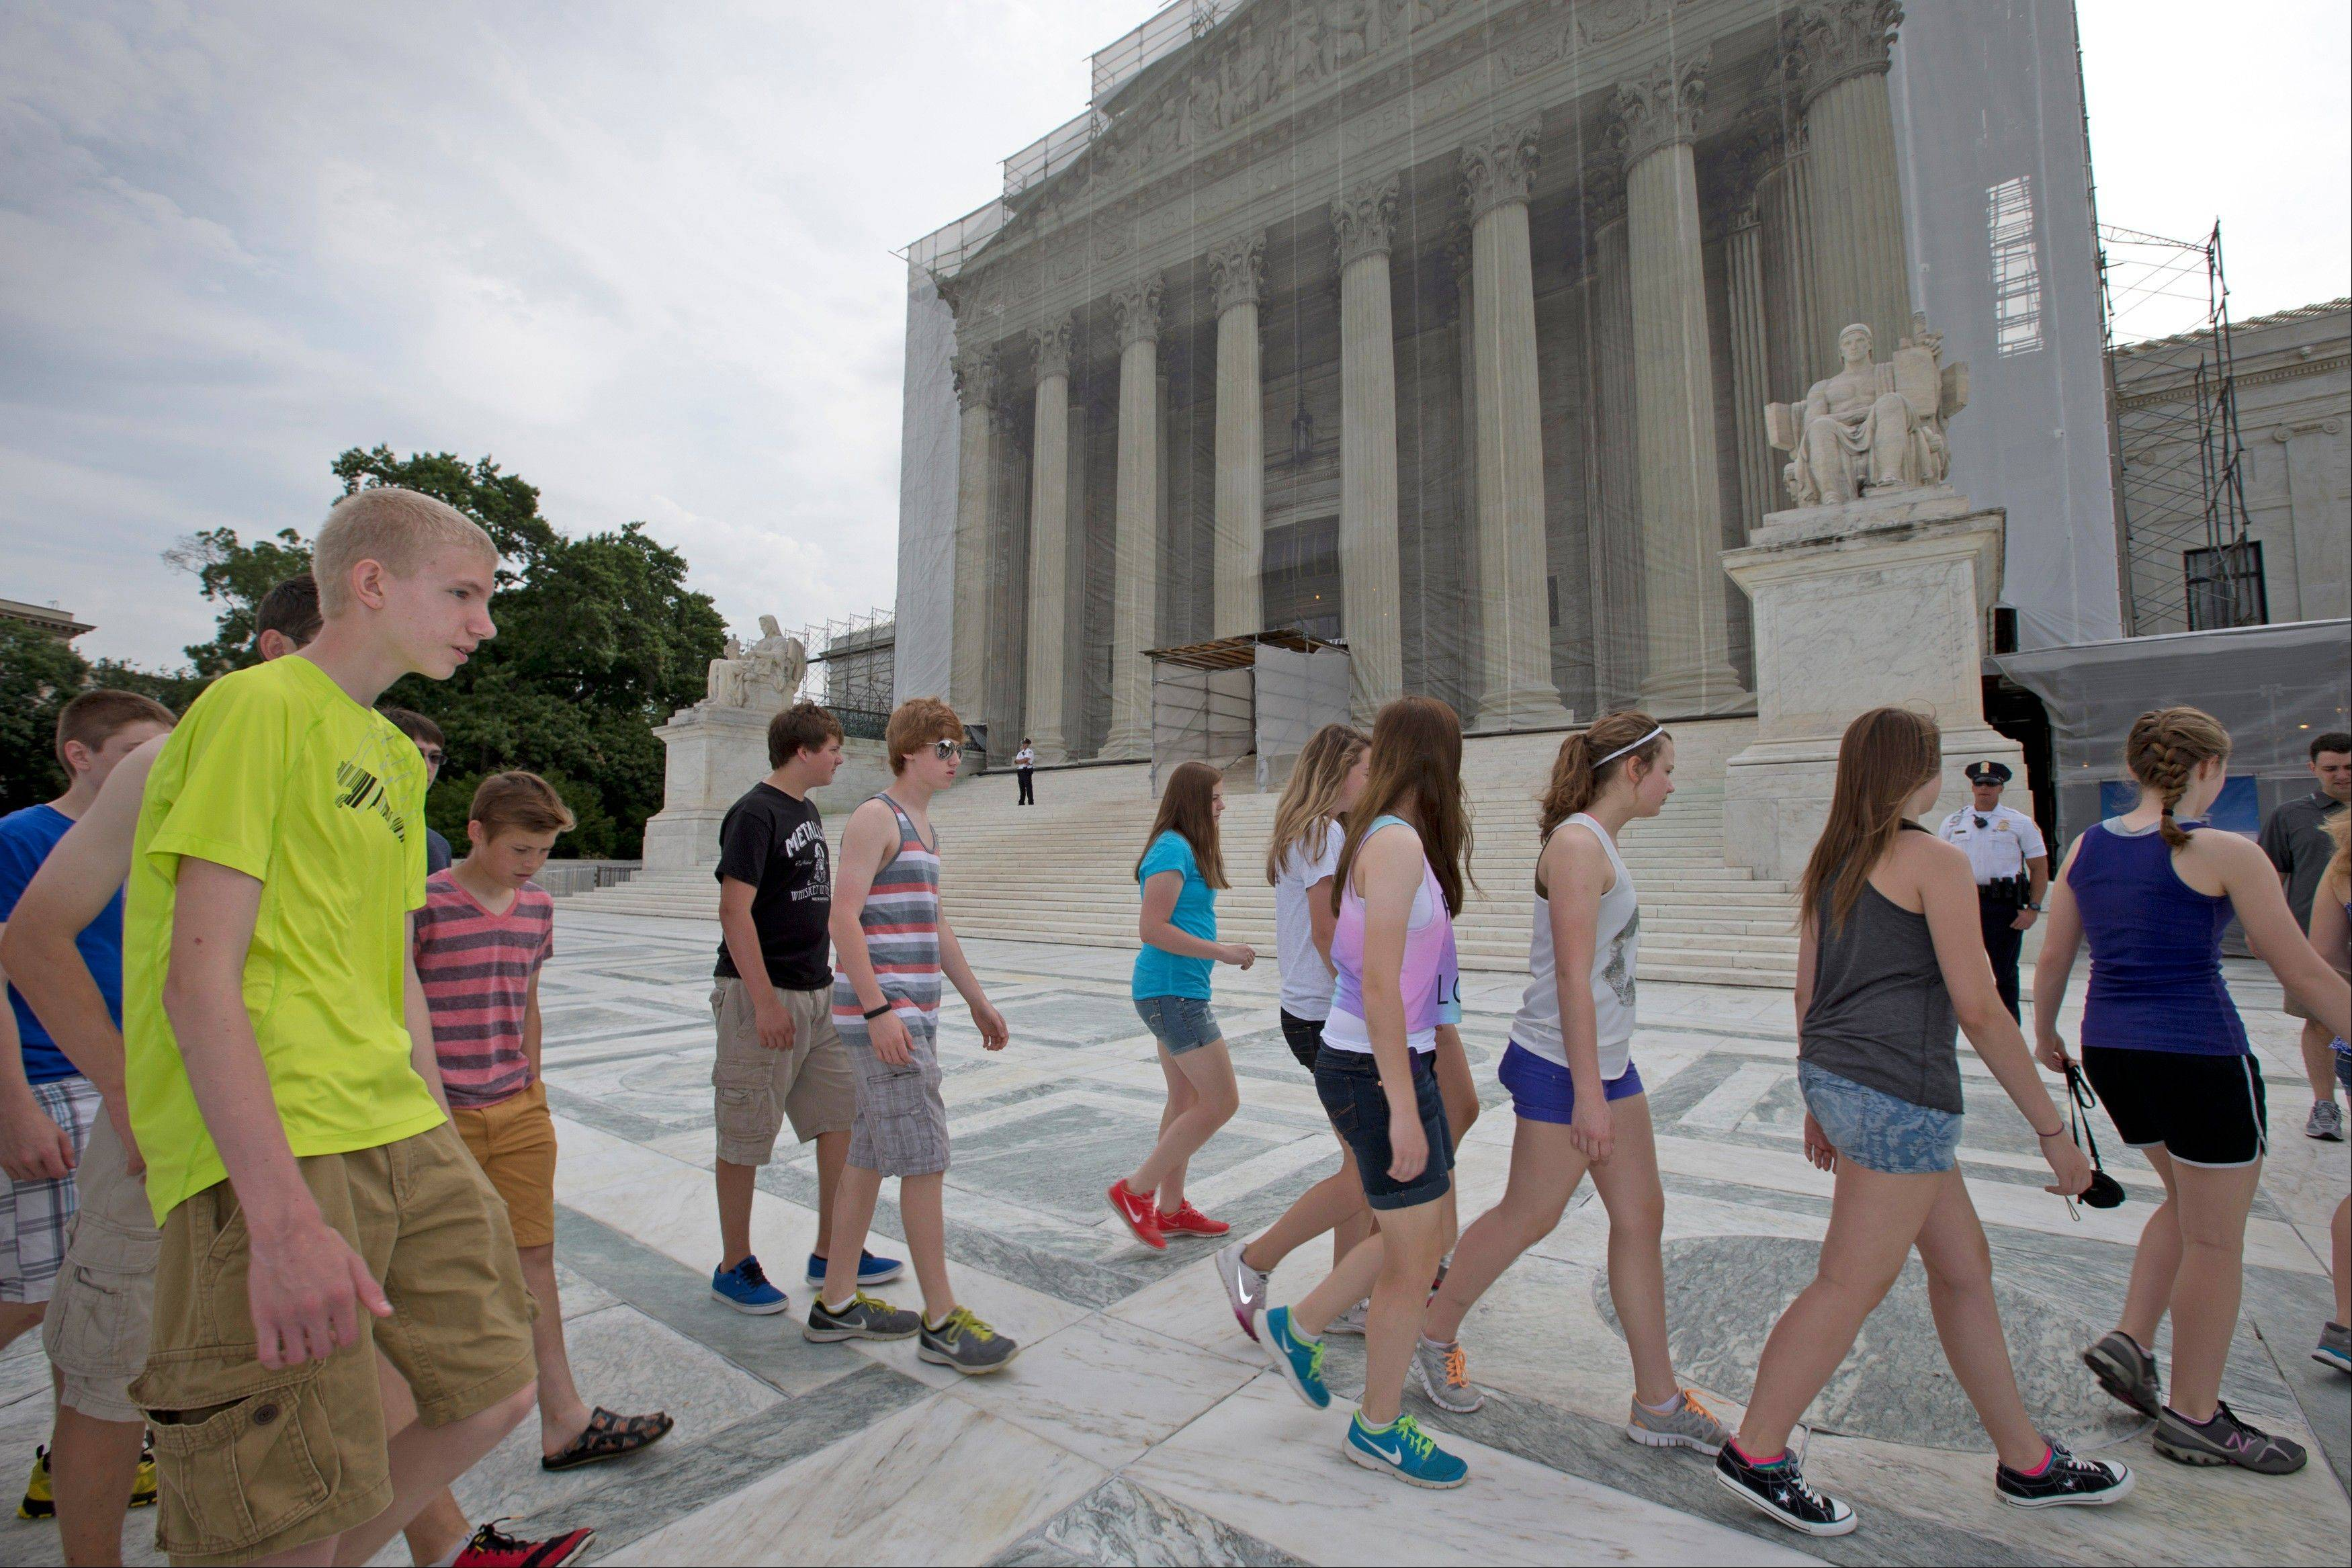 U.S. History students from Austin (Minn.) High School visit the Supreme Court in Washington Monday in anticipation of decisions being announced. In one of those decisions, the justices said deals between pharmaceutical corporations and their generic drug competitors can sometimes be illegal and therefore can be challenged in court.